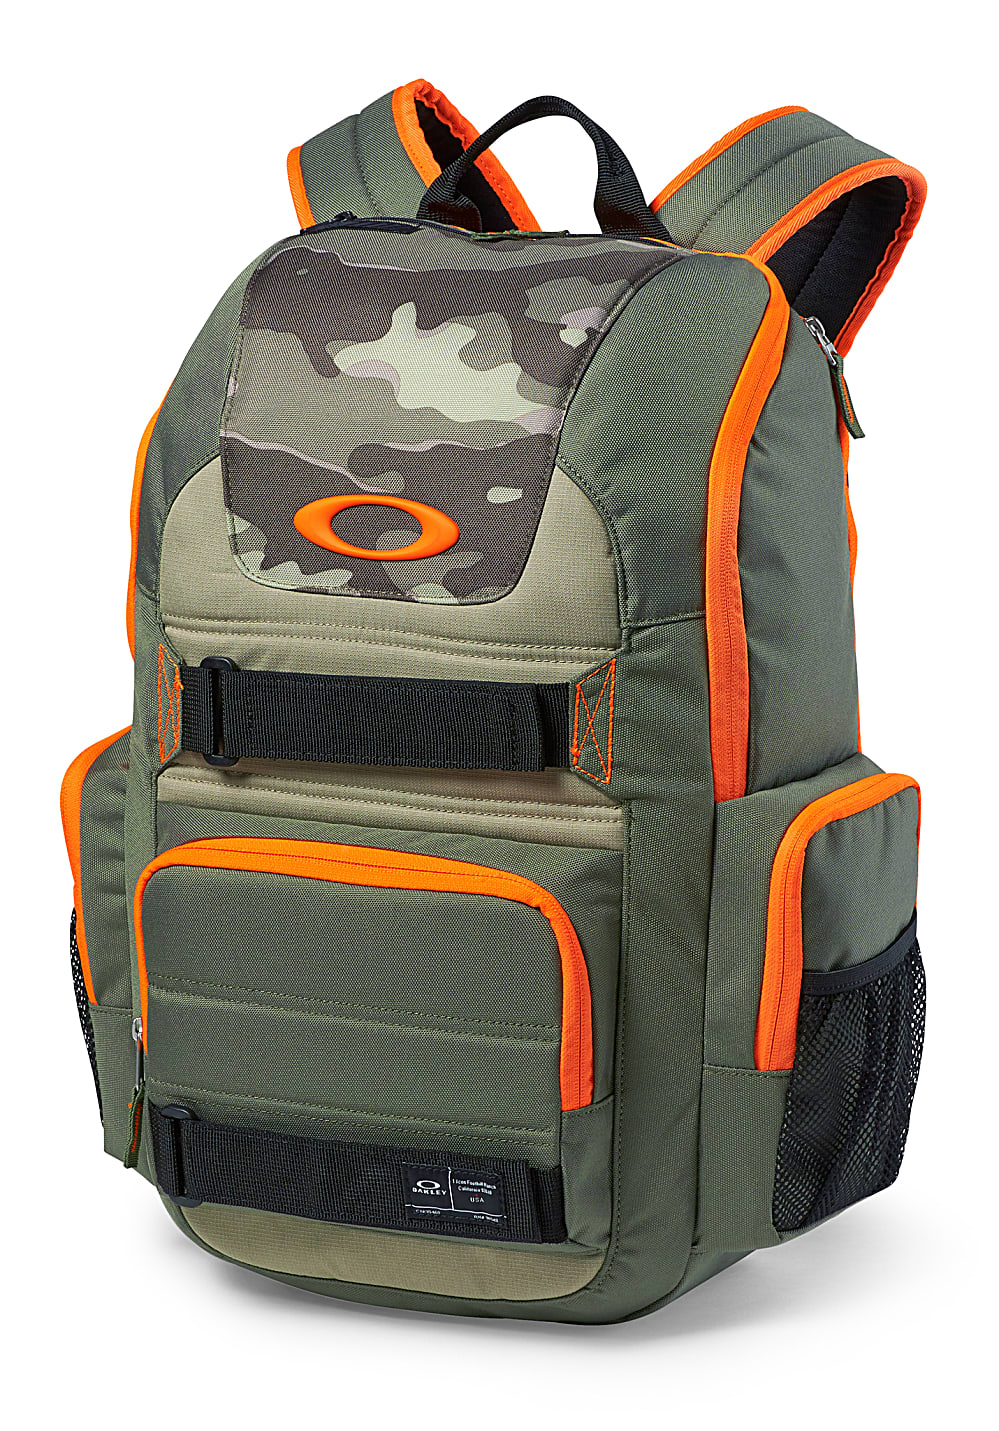 oakley enduro 25 rucksack f r herren gr n planet sports. Black Bedroom Furniture Sets. Home Design Ideas